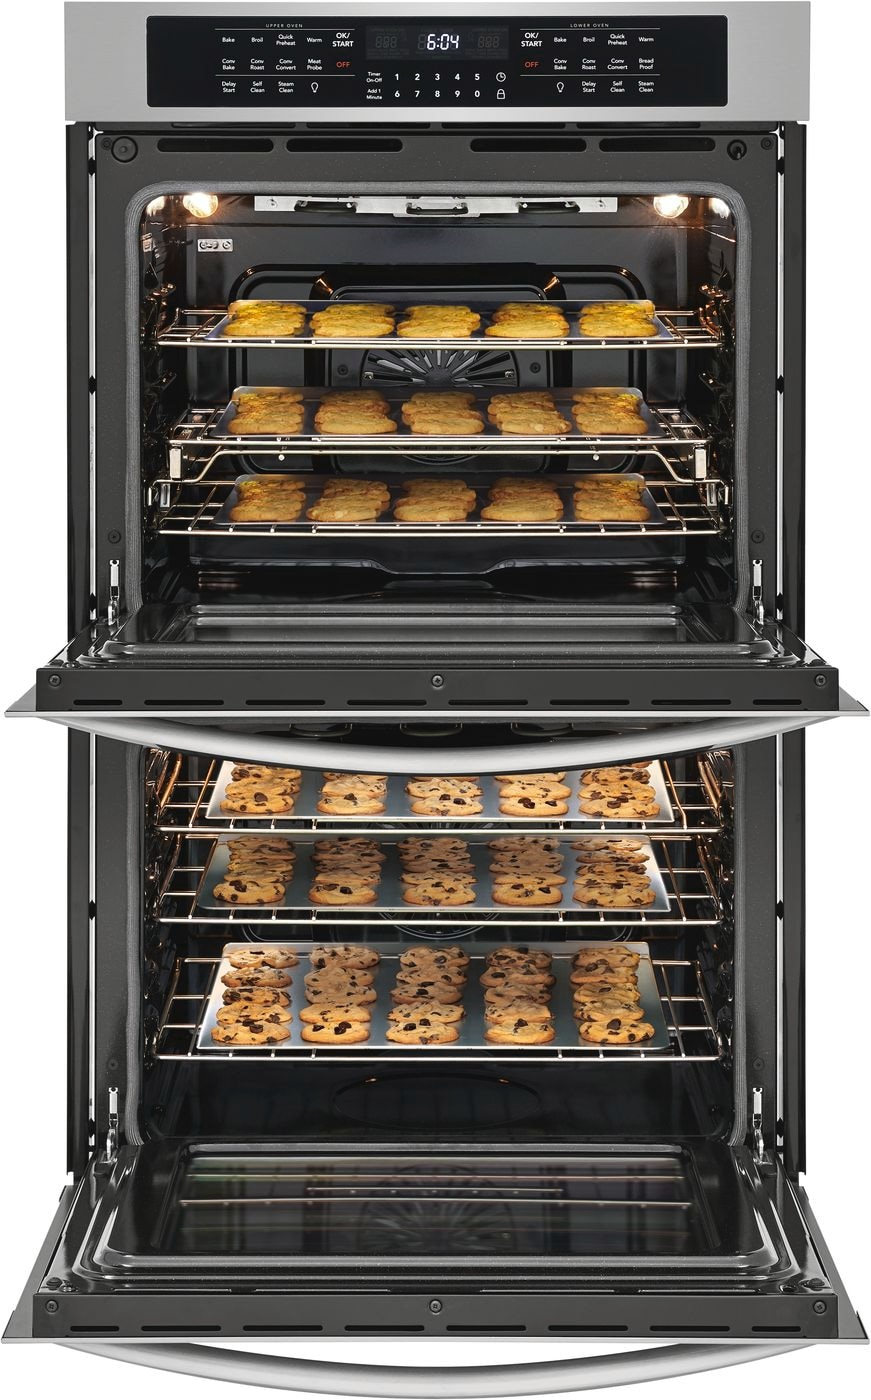 "Model: FGET3066UF | Frigidaire Gallery 30"" Double Electric Wall Oven"